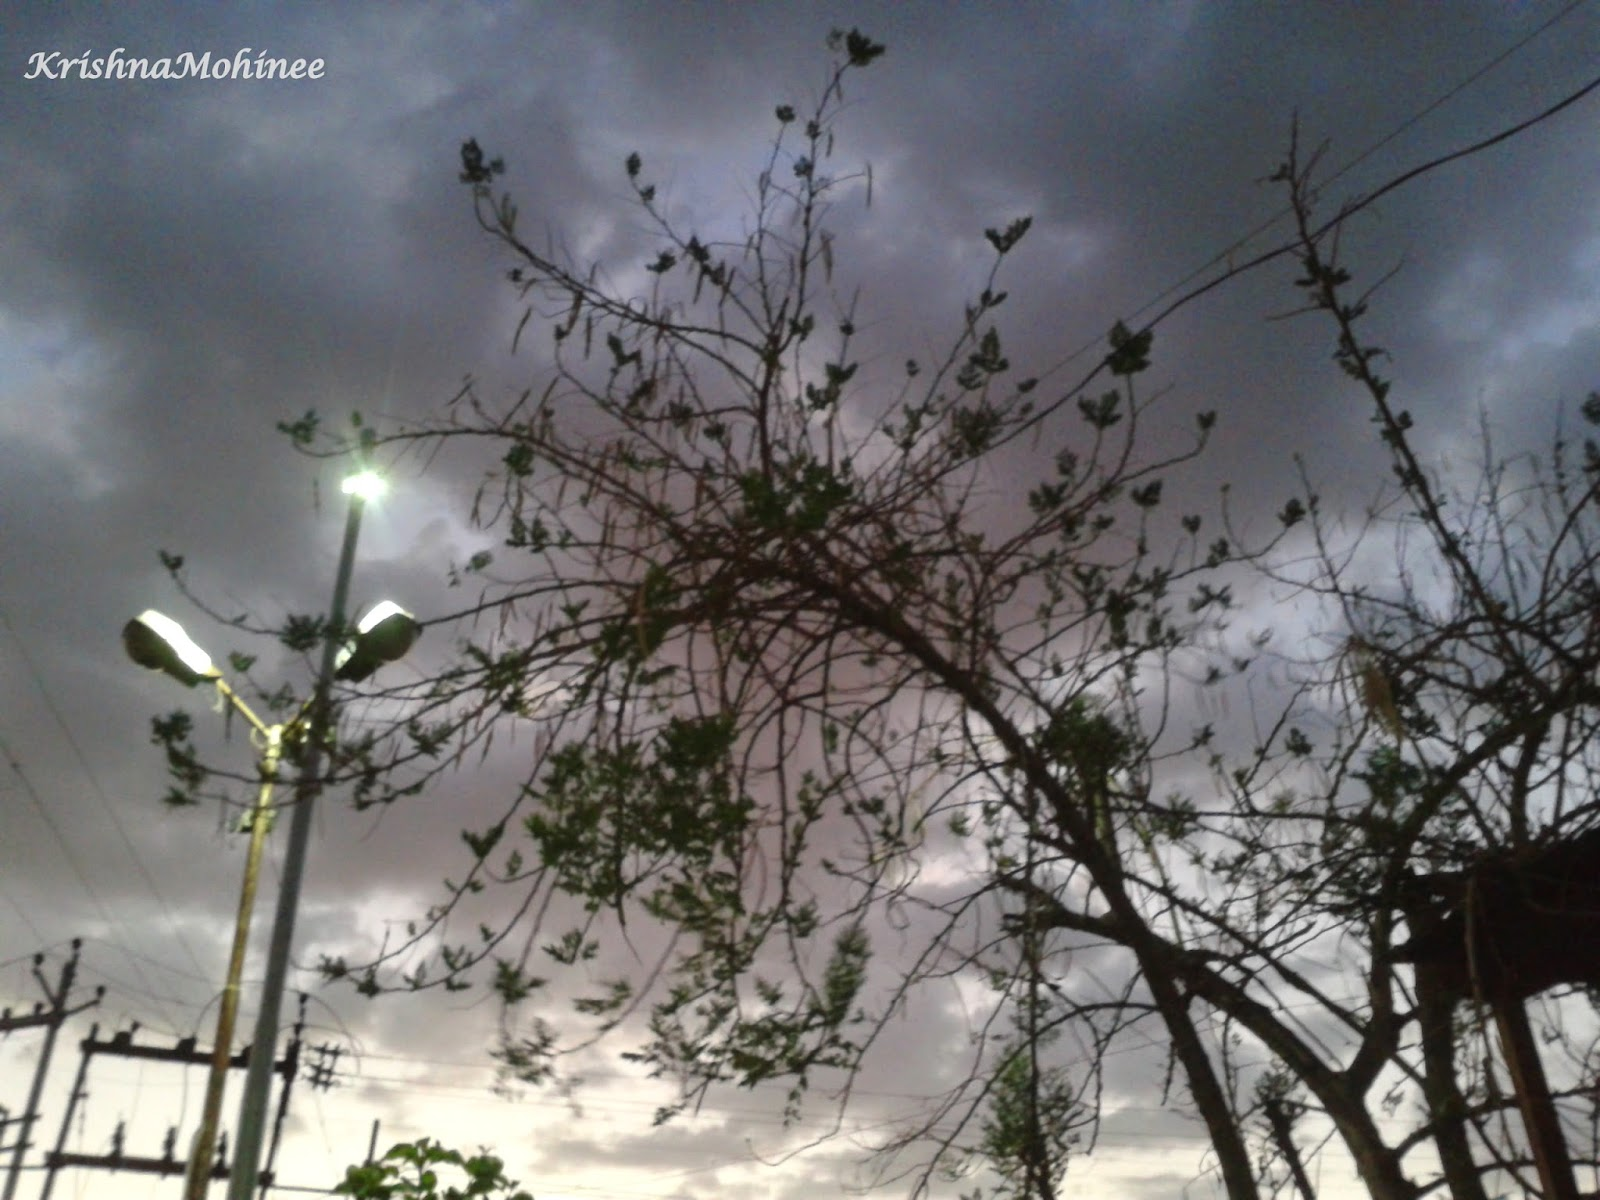 Image: Beauty of dark cloudy evening